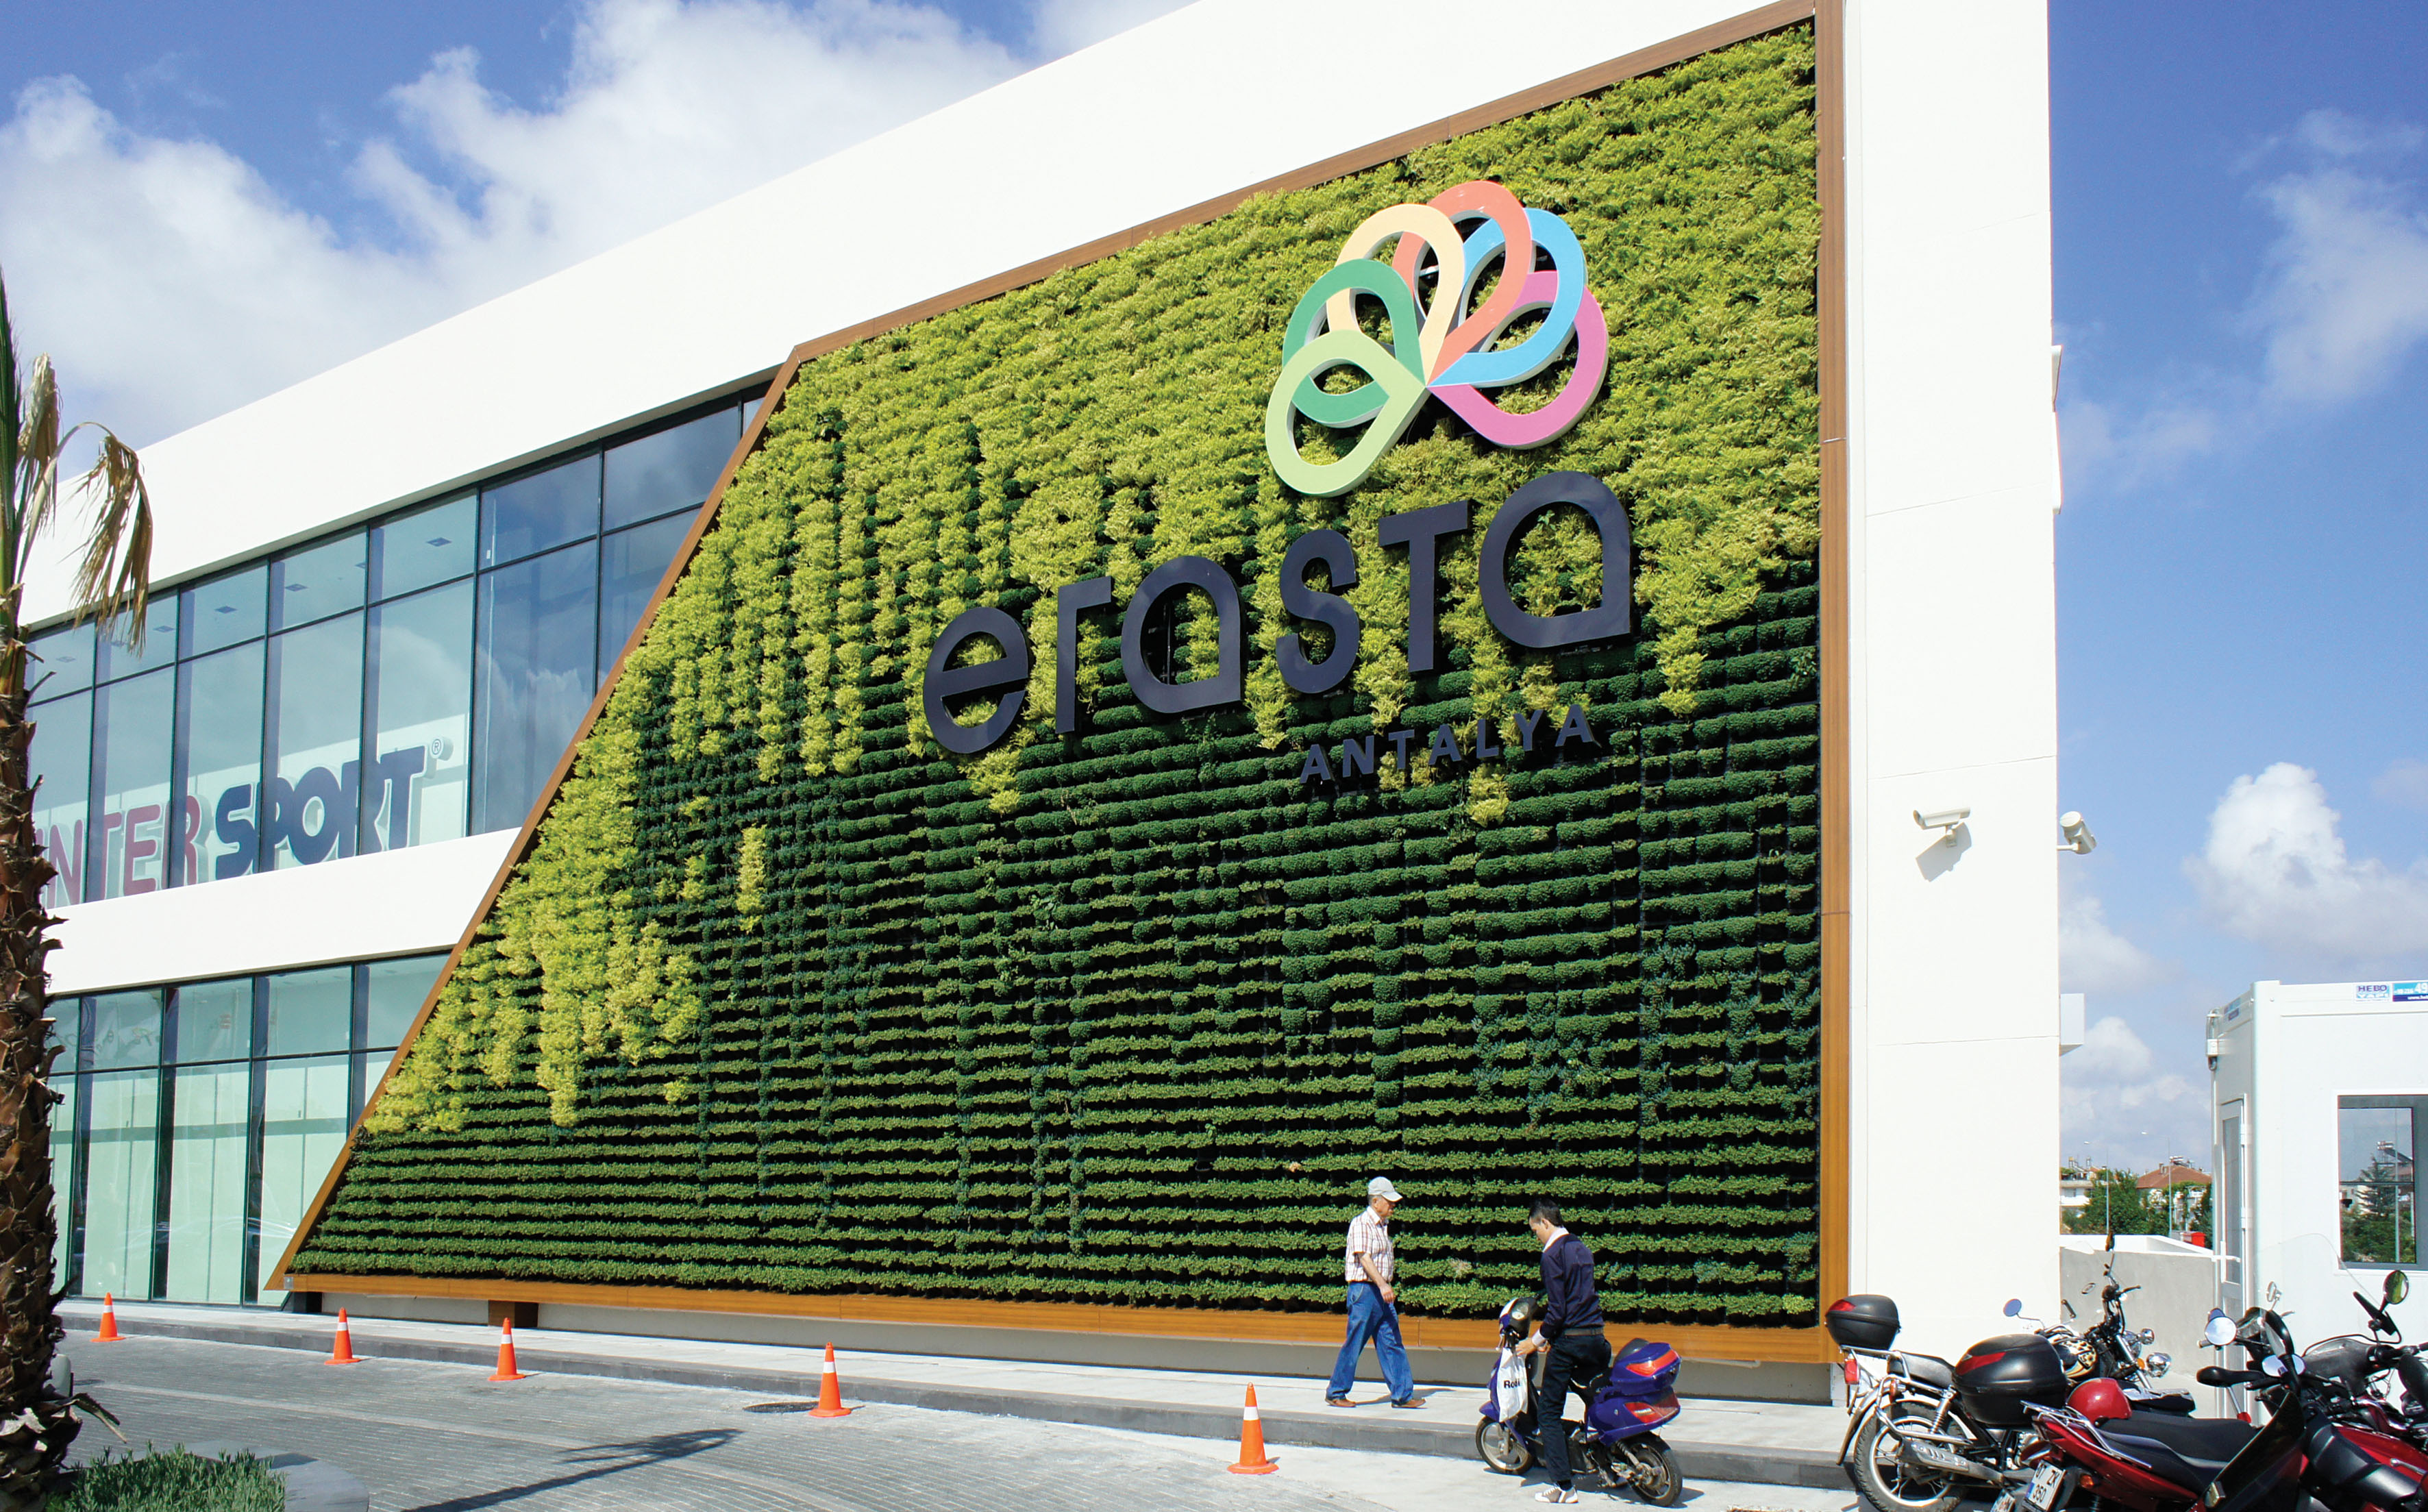 Atlantis Vertical Garden System Shopping Mall Turkey